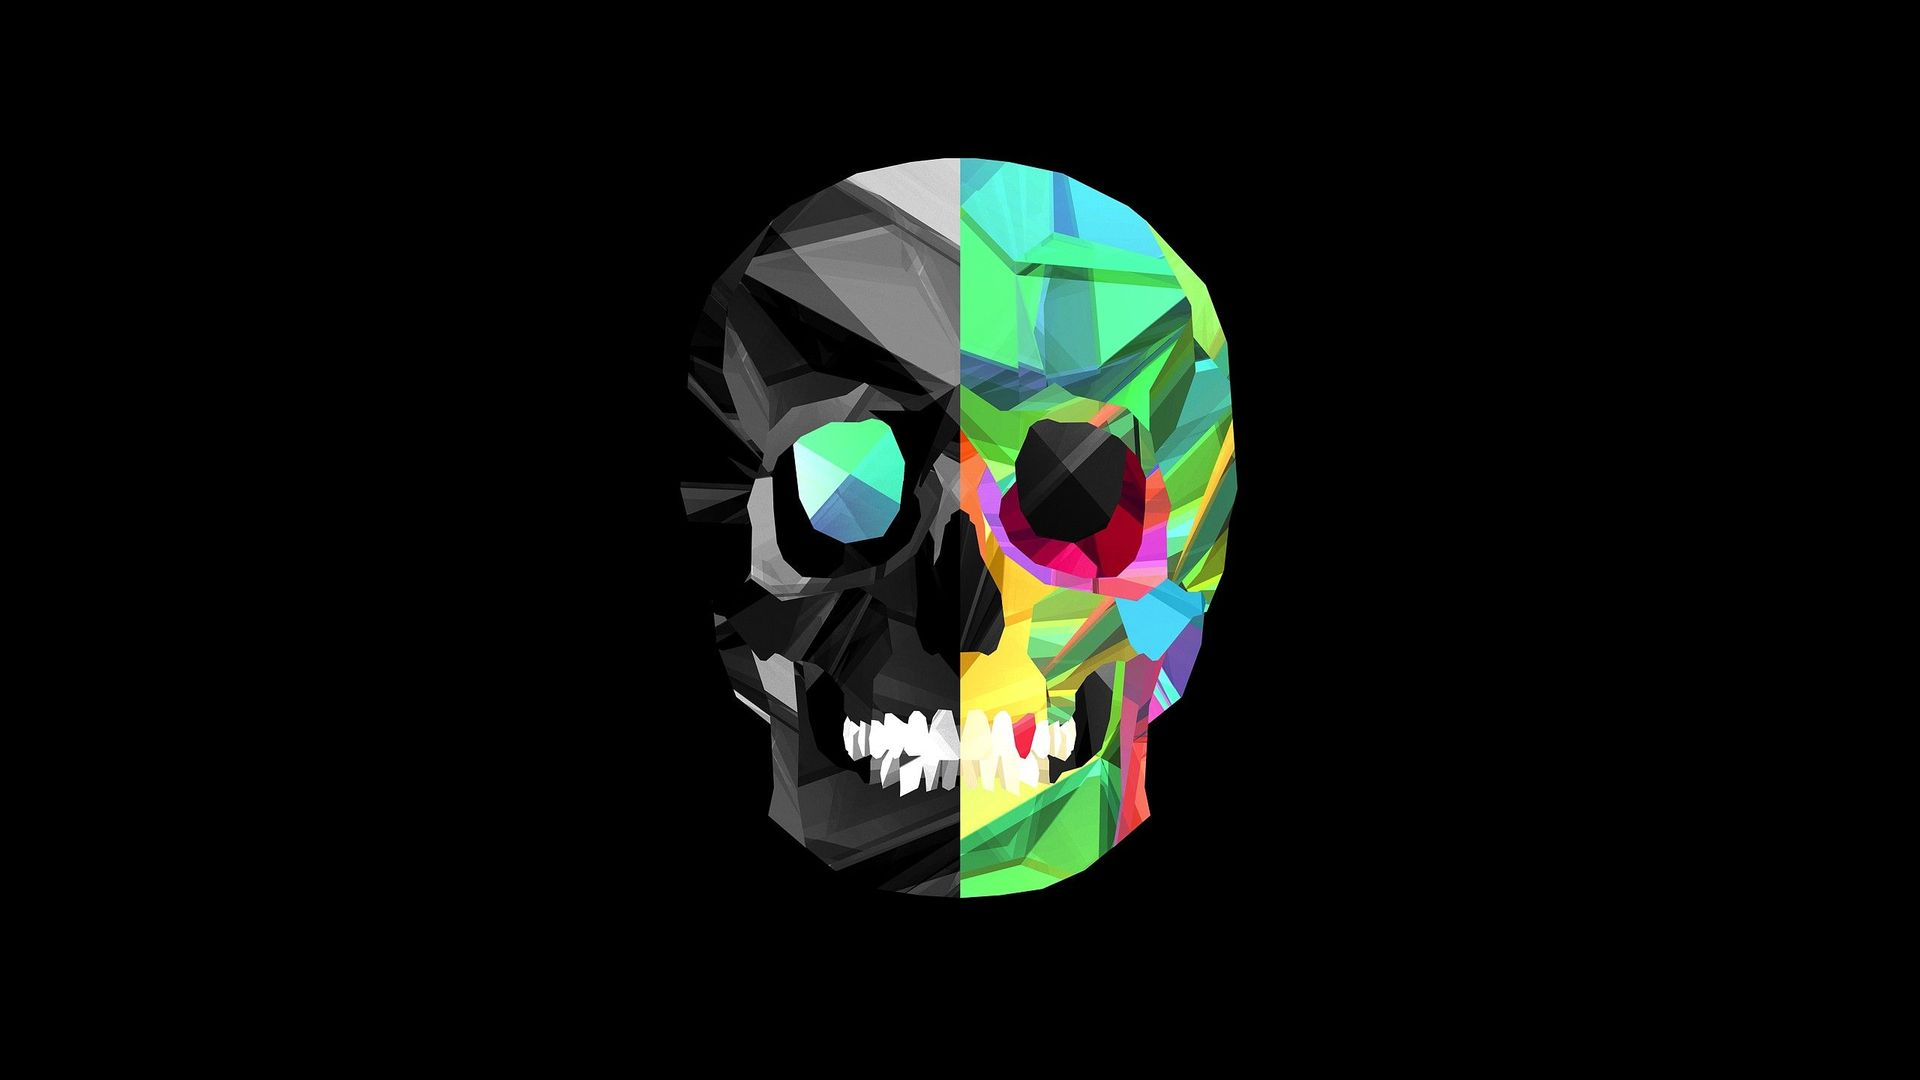 Cool Images of Colorful Skull 2174.45 Kb